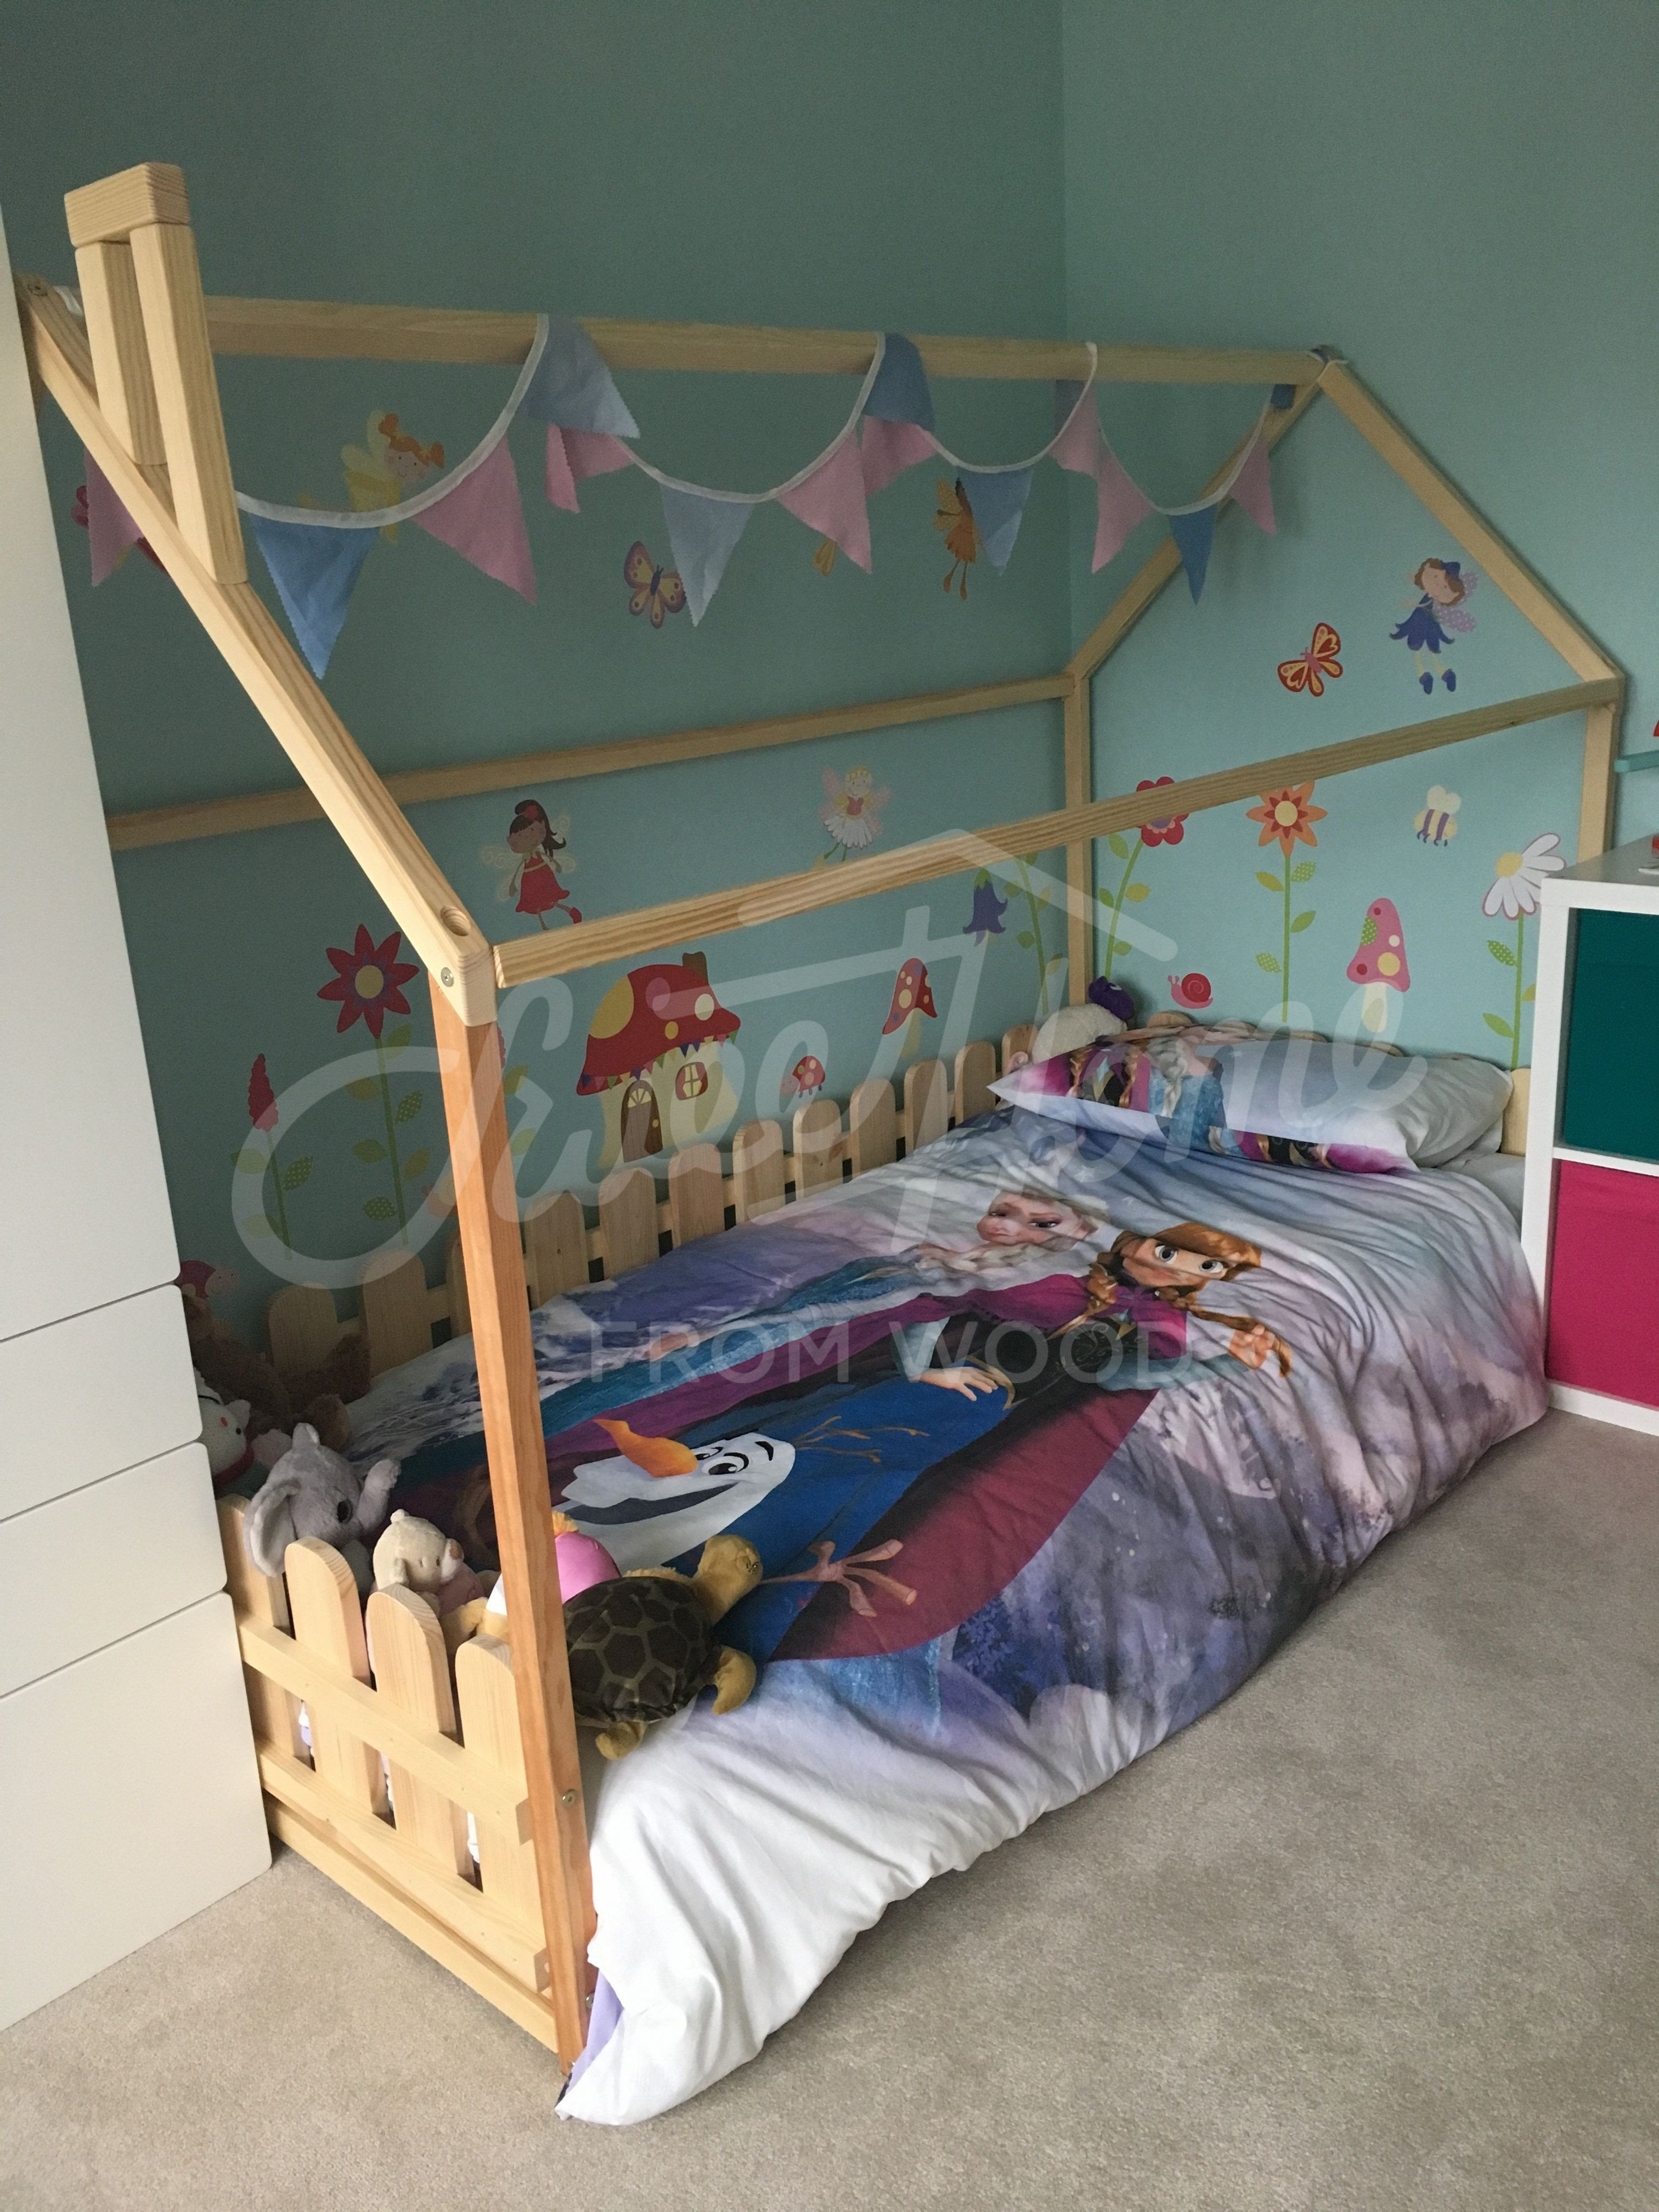 Kids Twin Bedroom Set Awesome Children Bed toddler Bed House Bed House Bedroom Interior